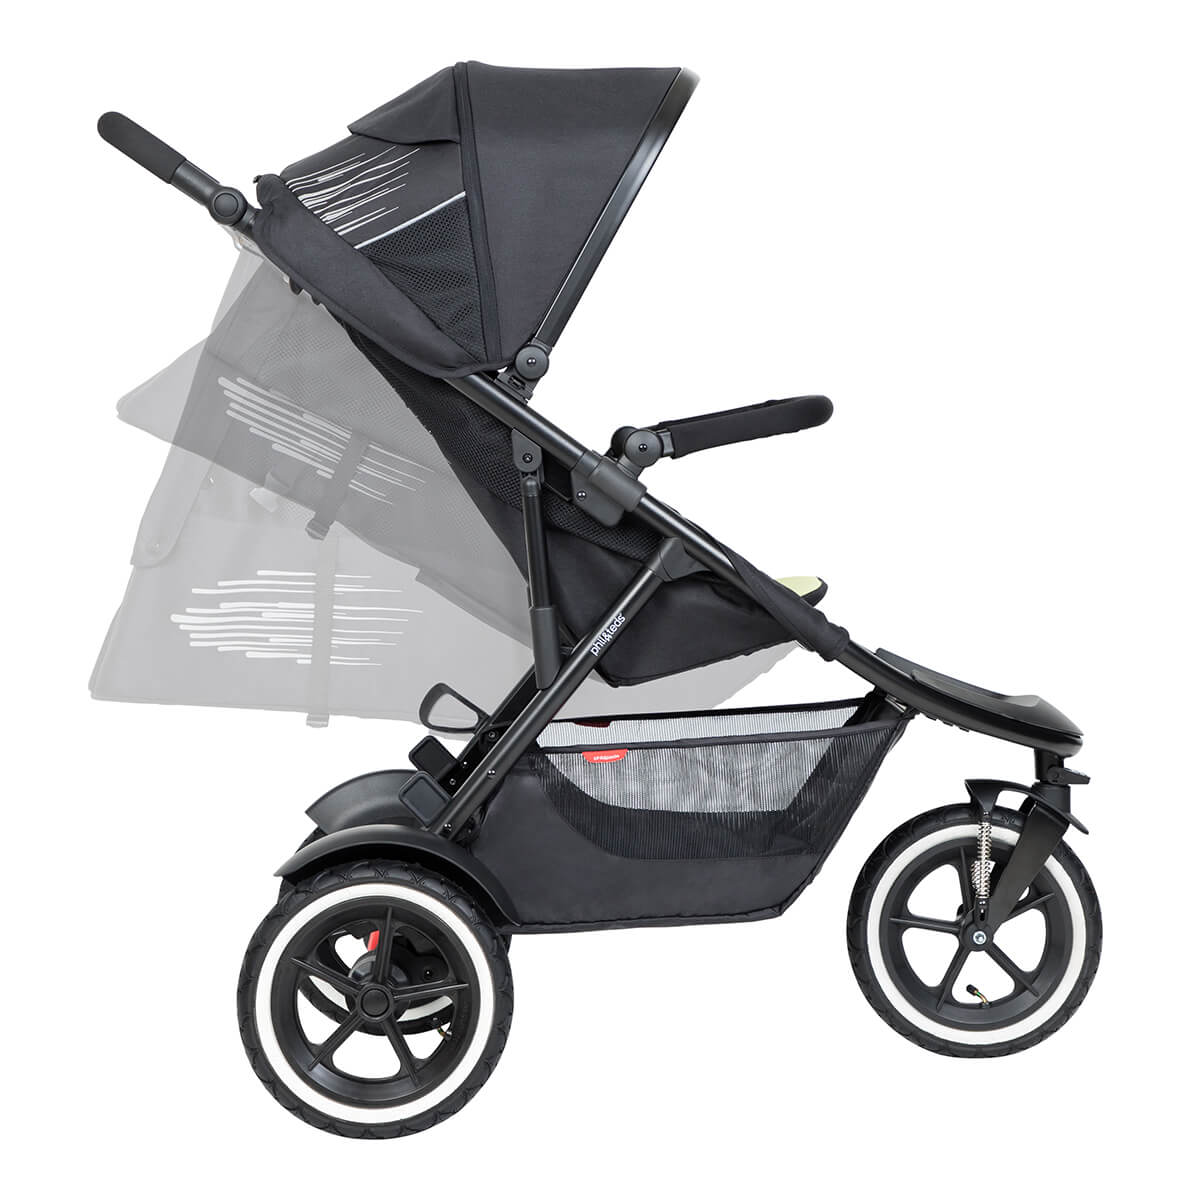 https://cdn.accentuate.io/4509528227928/19272668184664/philteds-sport-buggy-can-recline-in-multiple-angles-including-full-recline-for-newborn-baby-v1626484451866.jpg?1200x1200